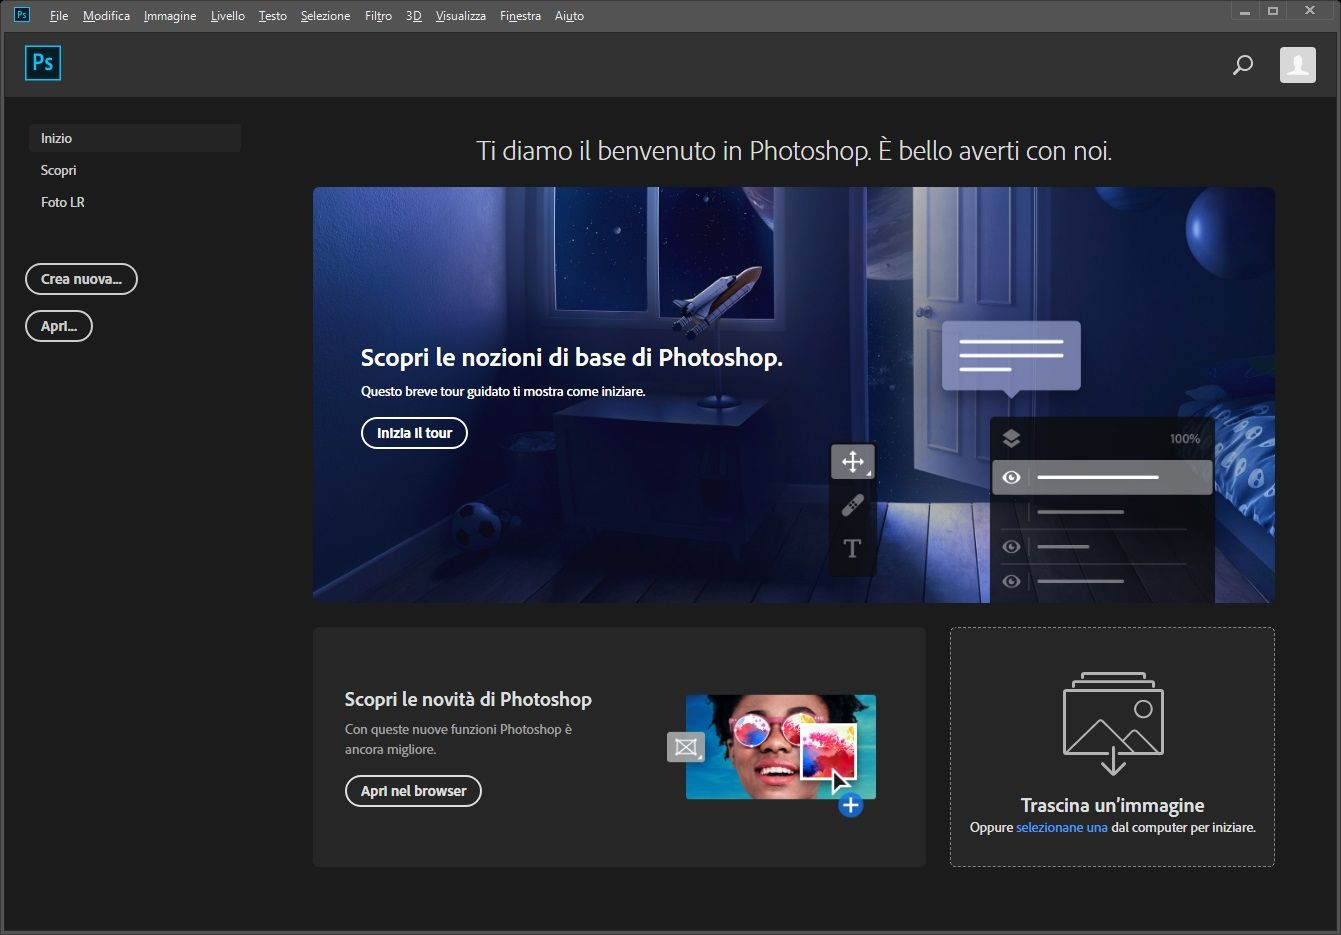 Adobe Photoshop 2020 v21.0.1.47 64 Bit - ITA